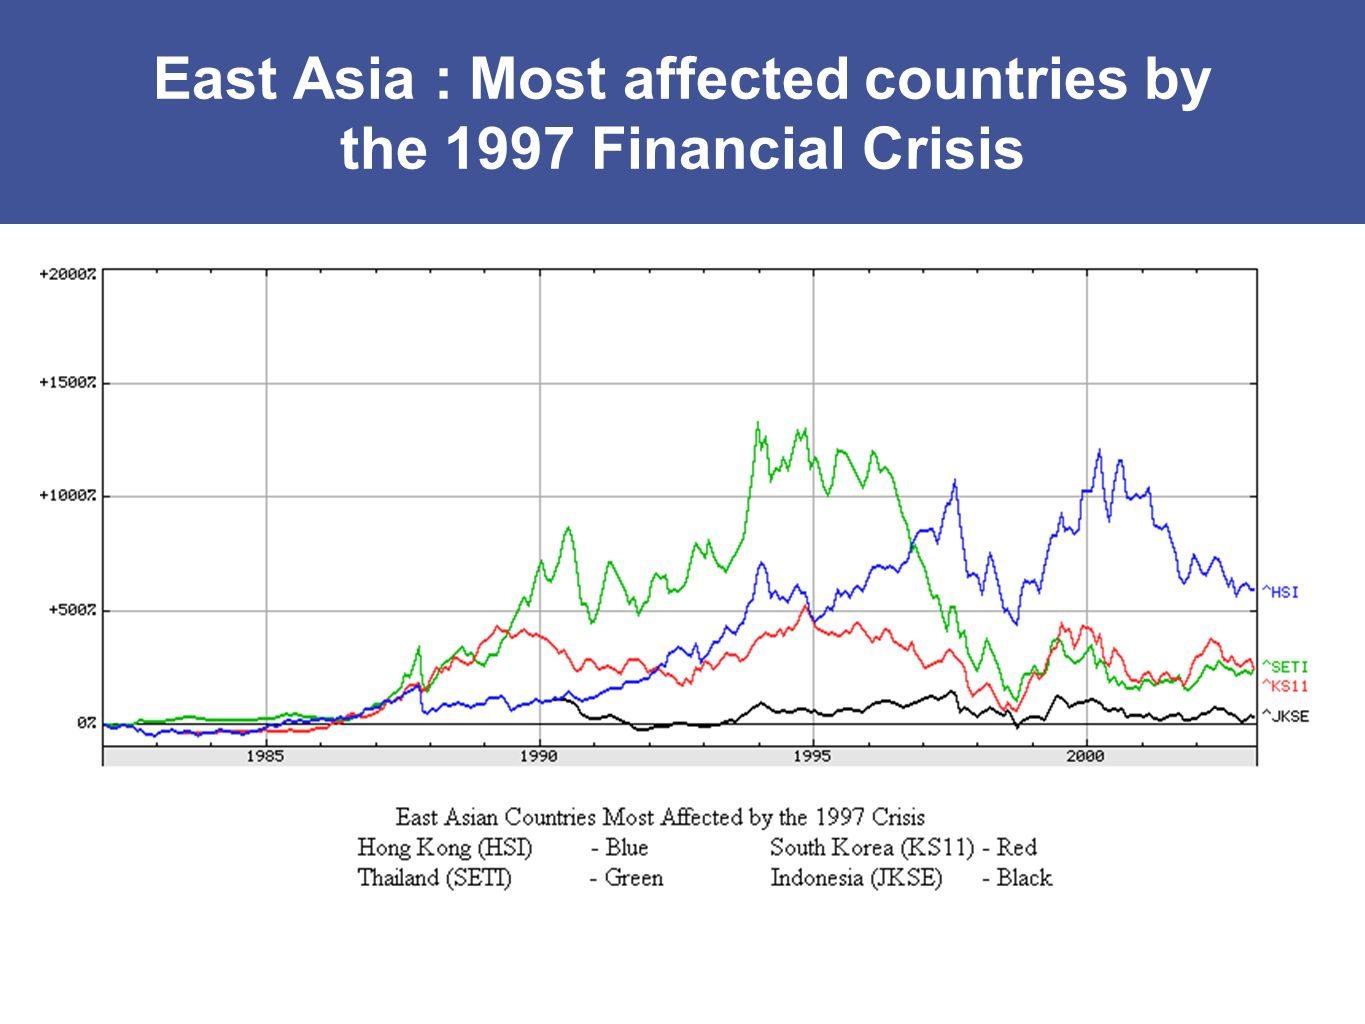 East Asia : Most affected countries by the 1997 Financial Crisis